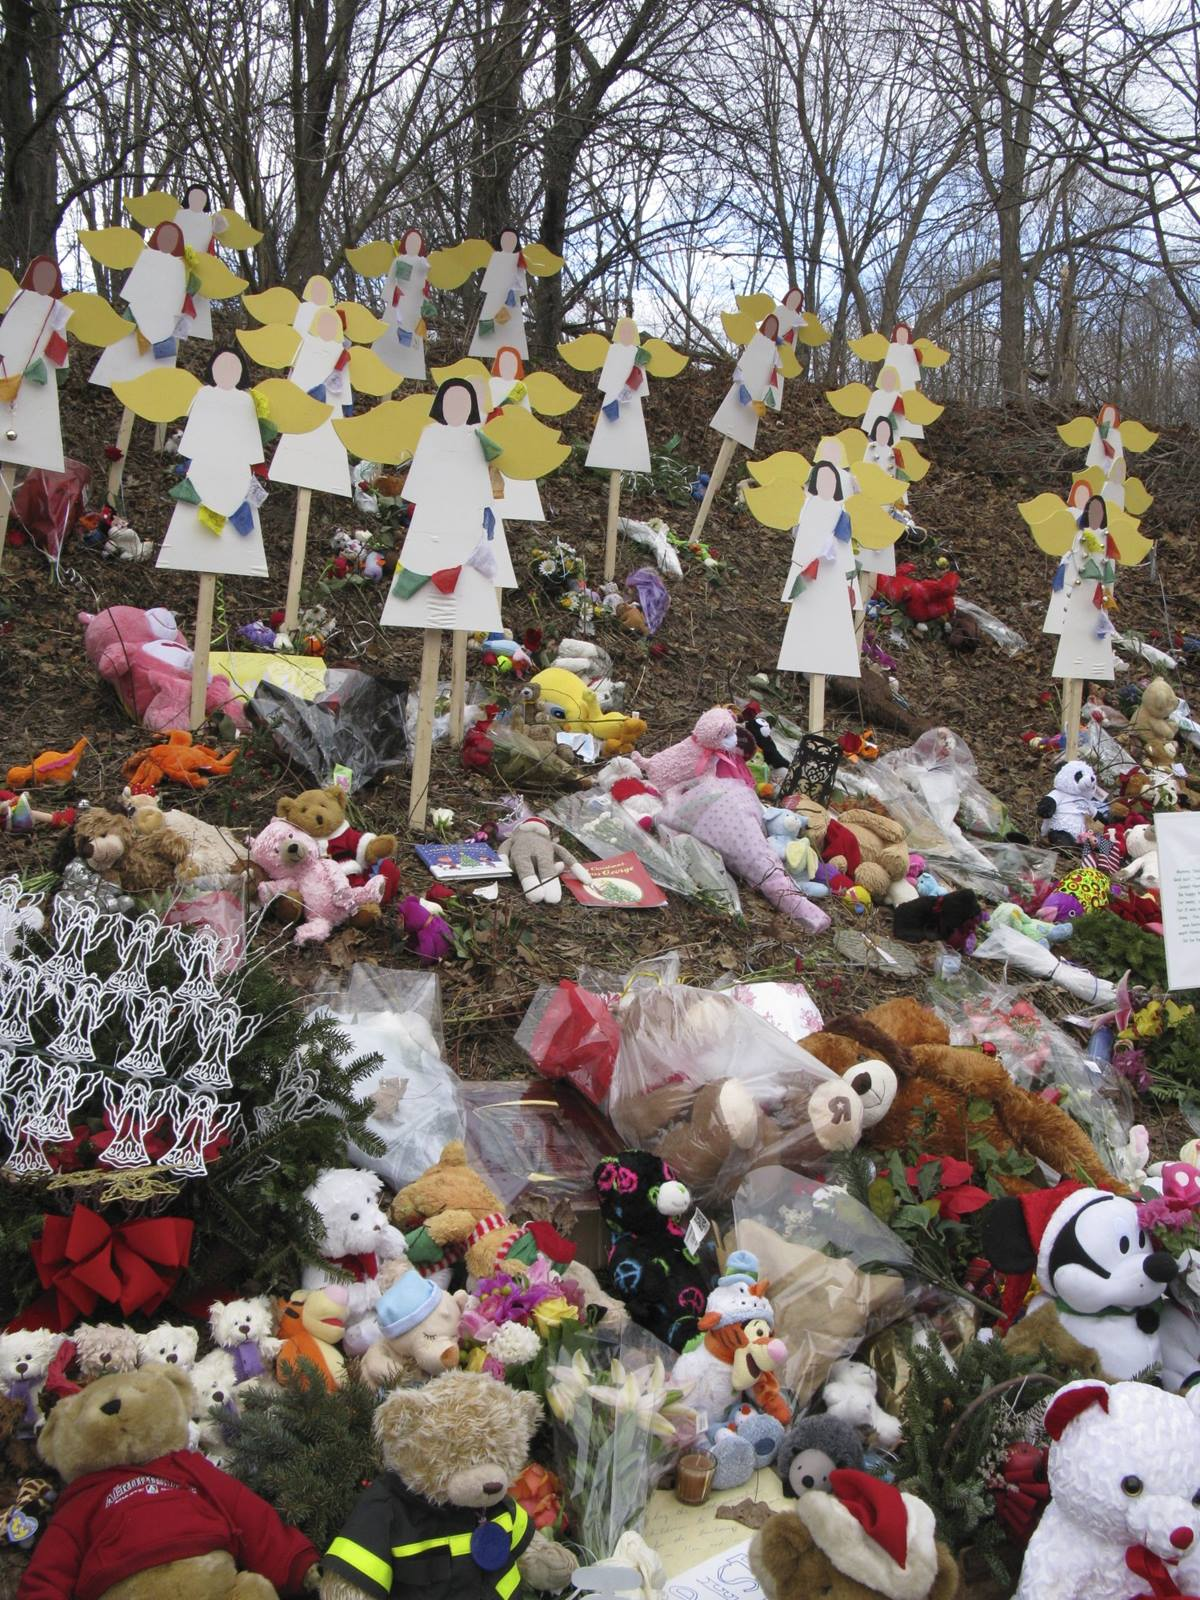 A shrine for the Sandy Hook shooting victims. Photo courtesy Stephen Drachler.